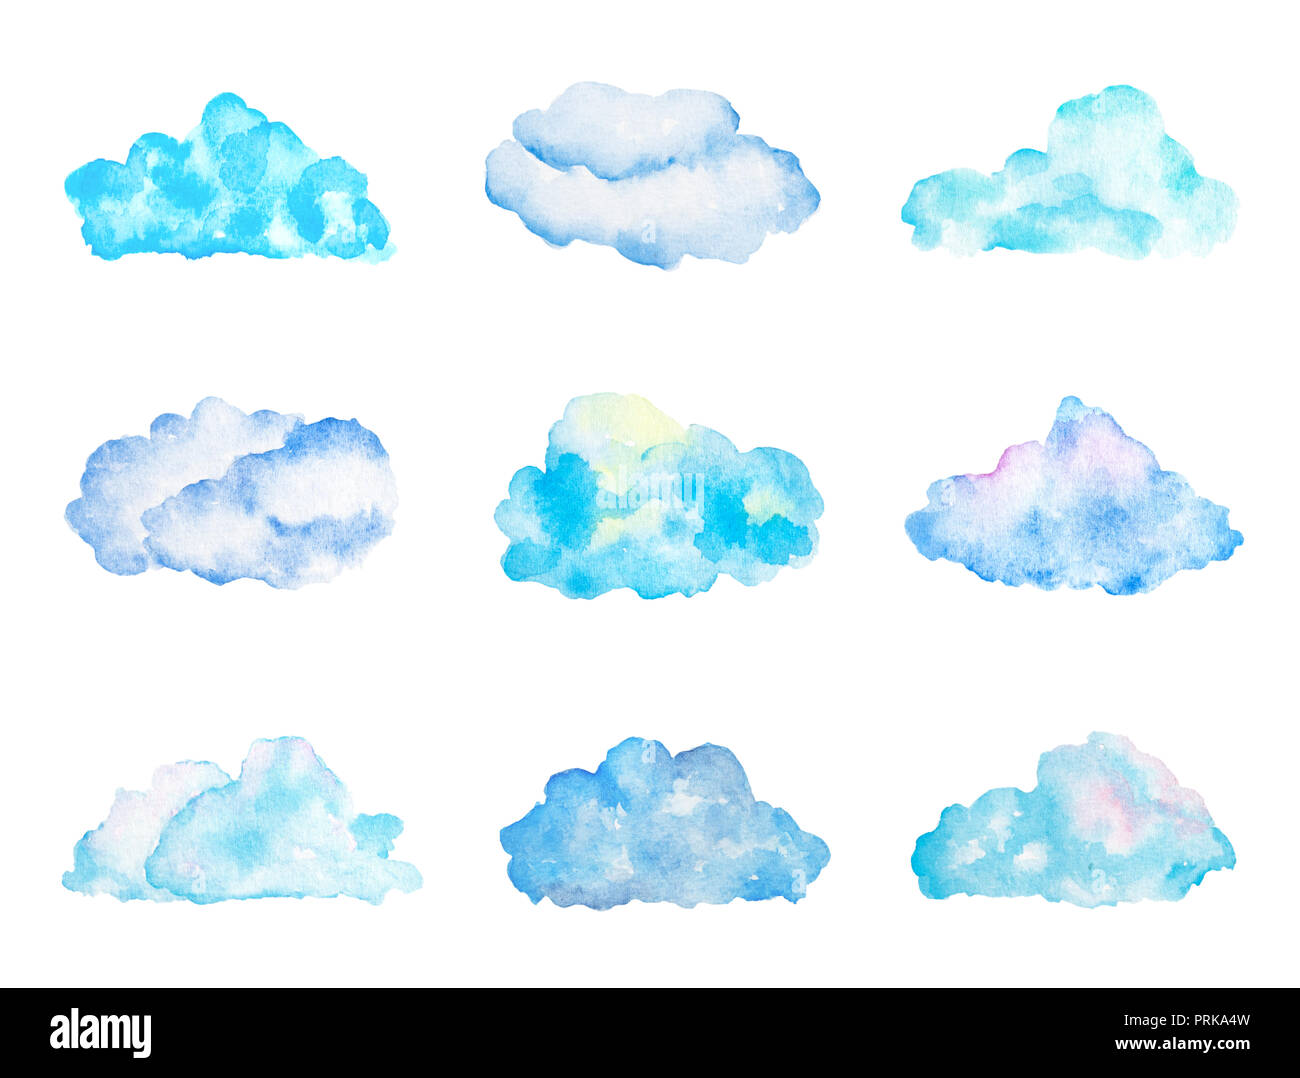 Set of Bright Light Blue Watercolor Clouds, Isolated on White, Hand Drawn and Painted - Stock Image